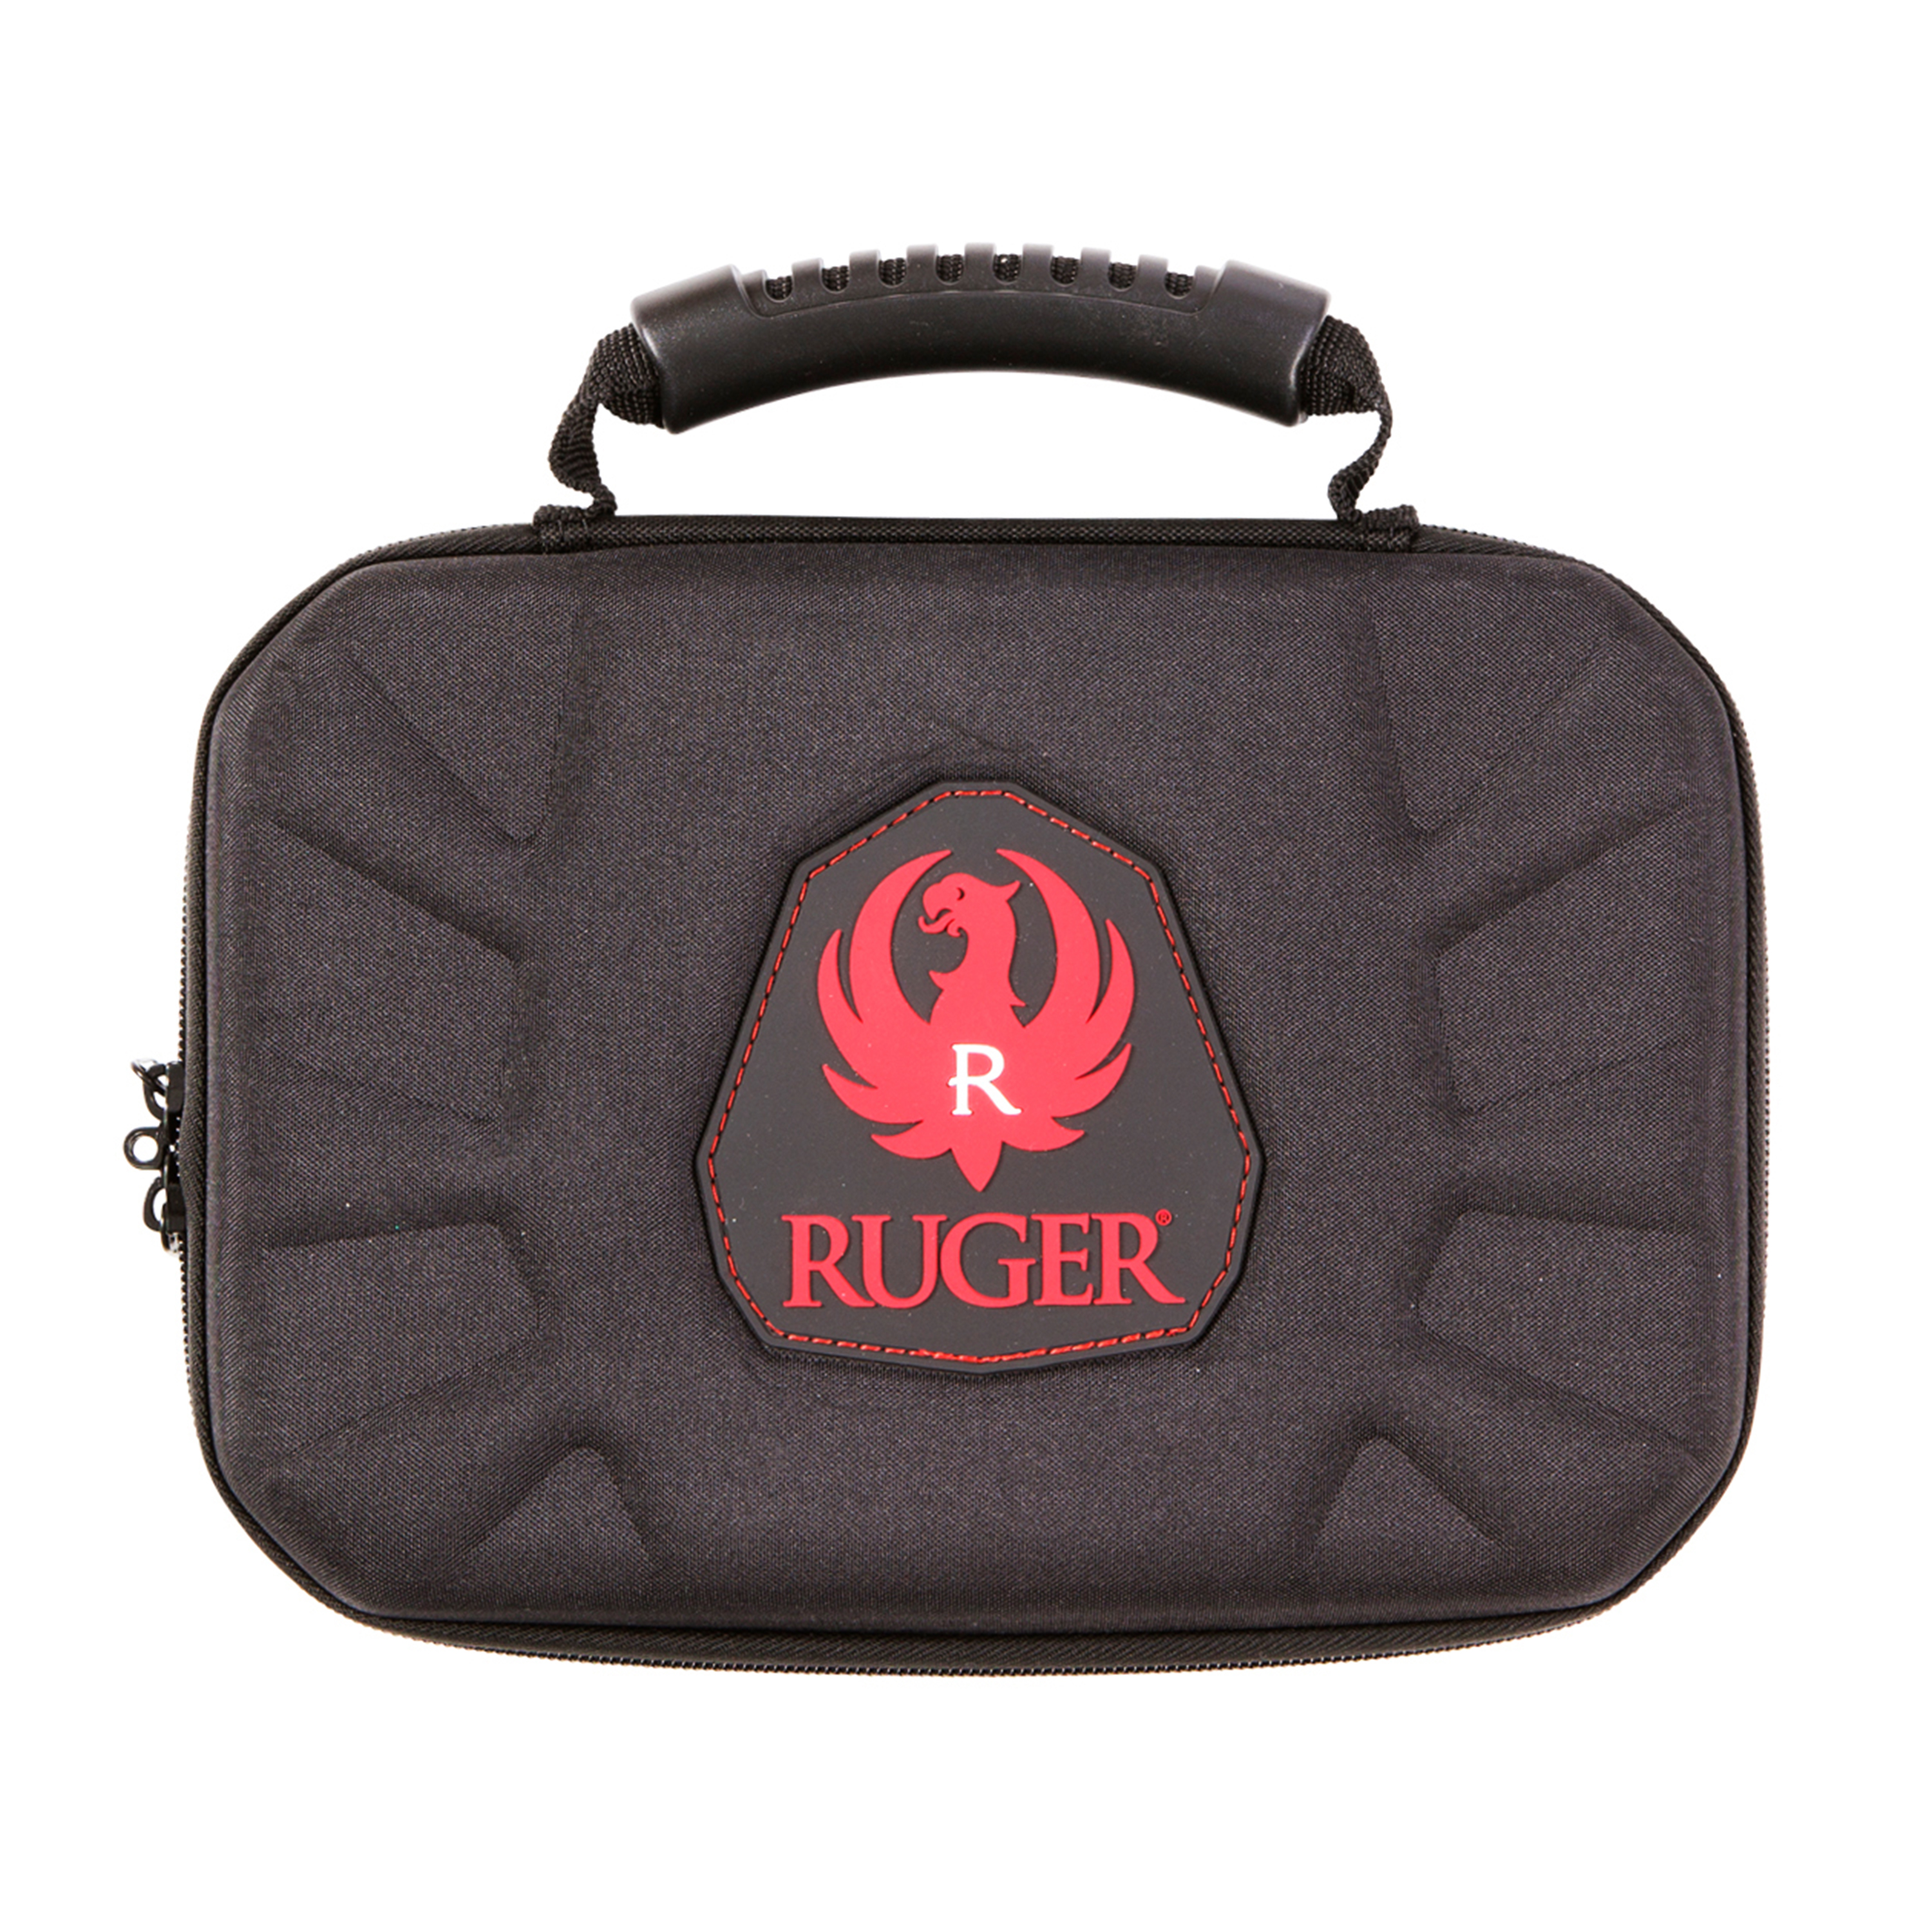 "Allen Cases Ruger Blockade Molded Handgun Case 12"" Black/Red"